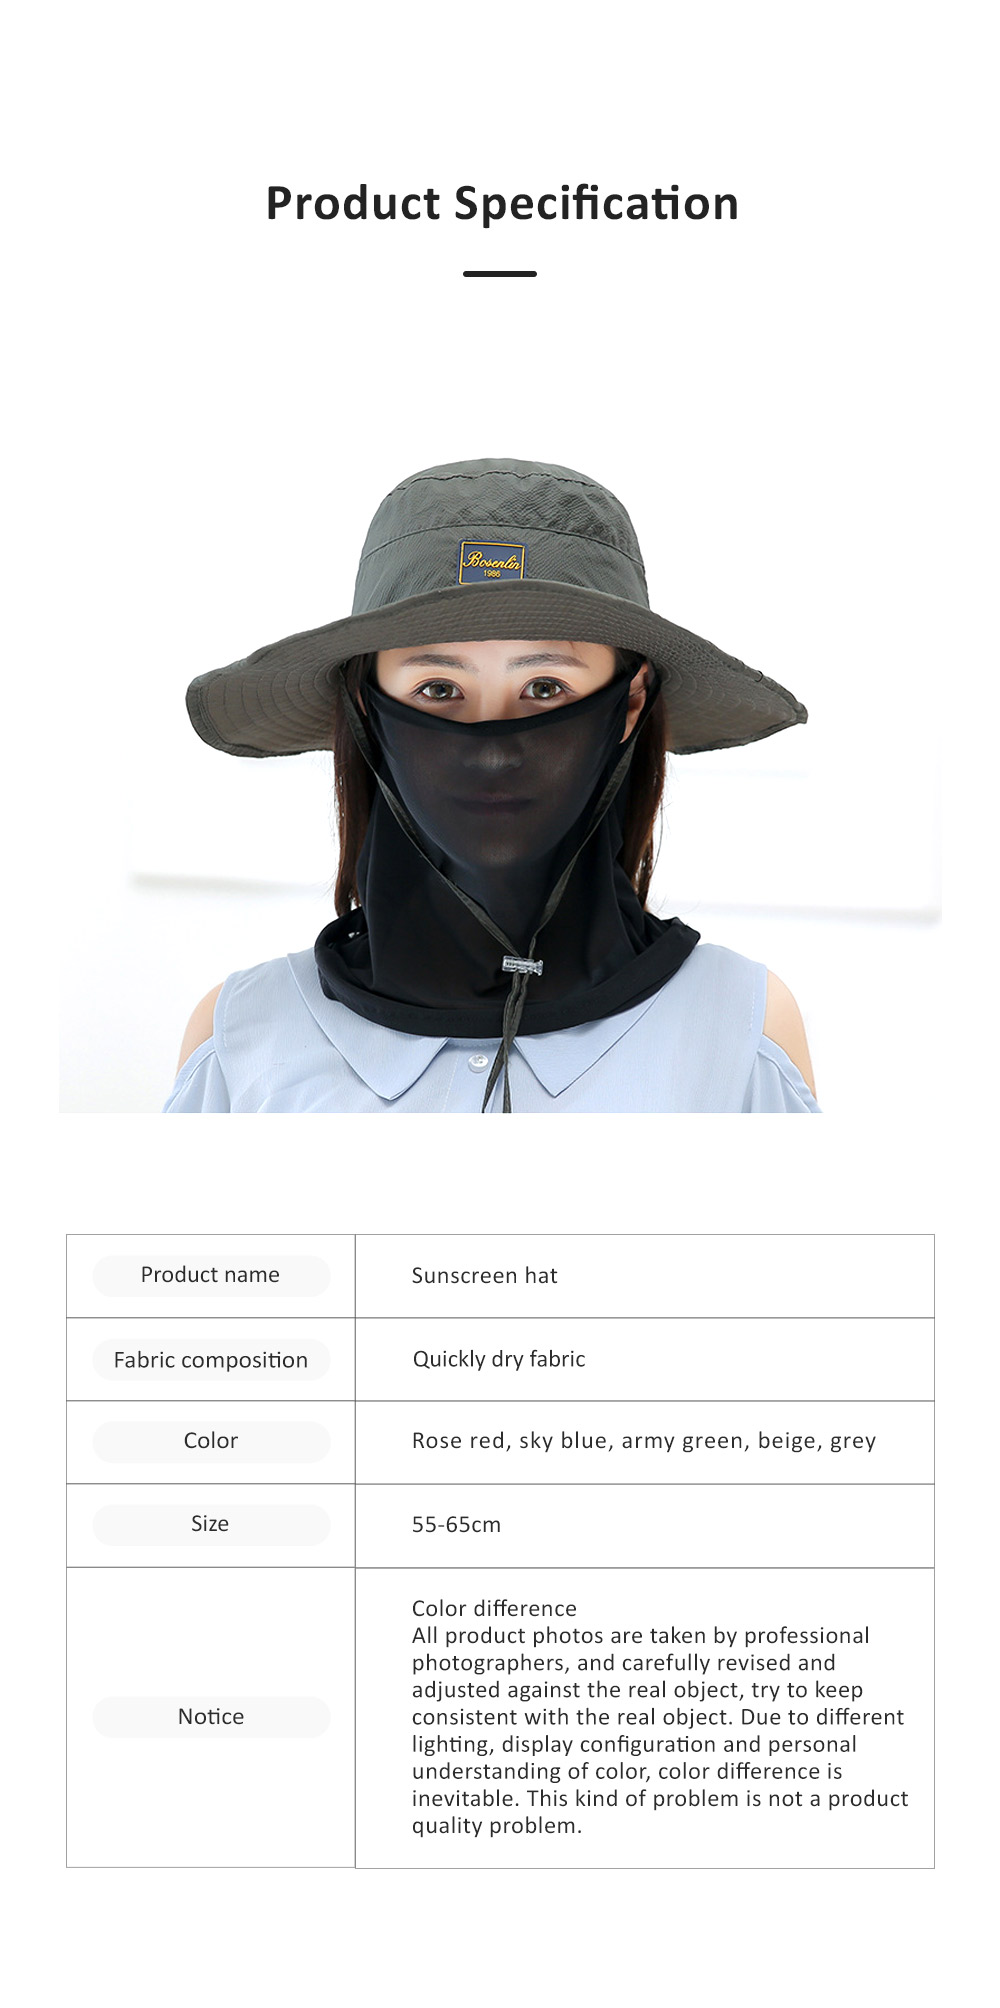 Unisex Sunscreen Hat for Outdoor Enthusiast, Mesh Breathable Mask Brand Logo Alpine Cap For Men Women Wide Brim Adjustable Wind Rope Outdoor Appliances 7